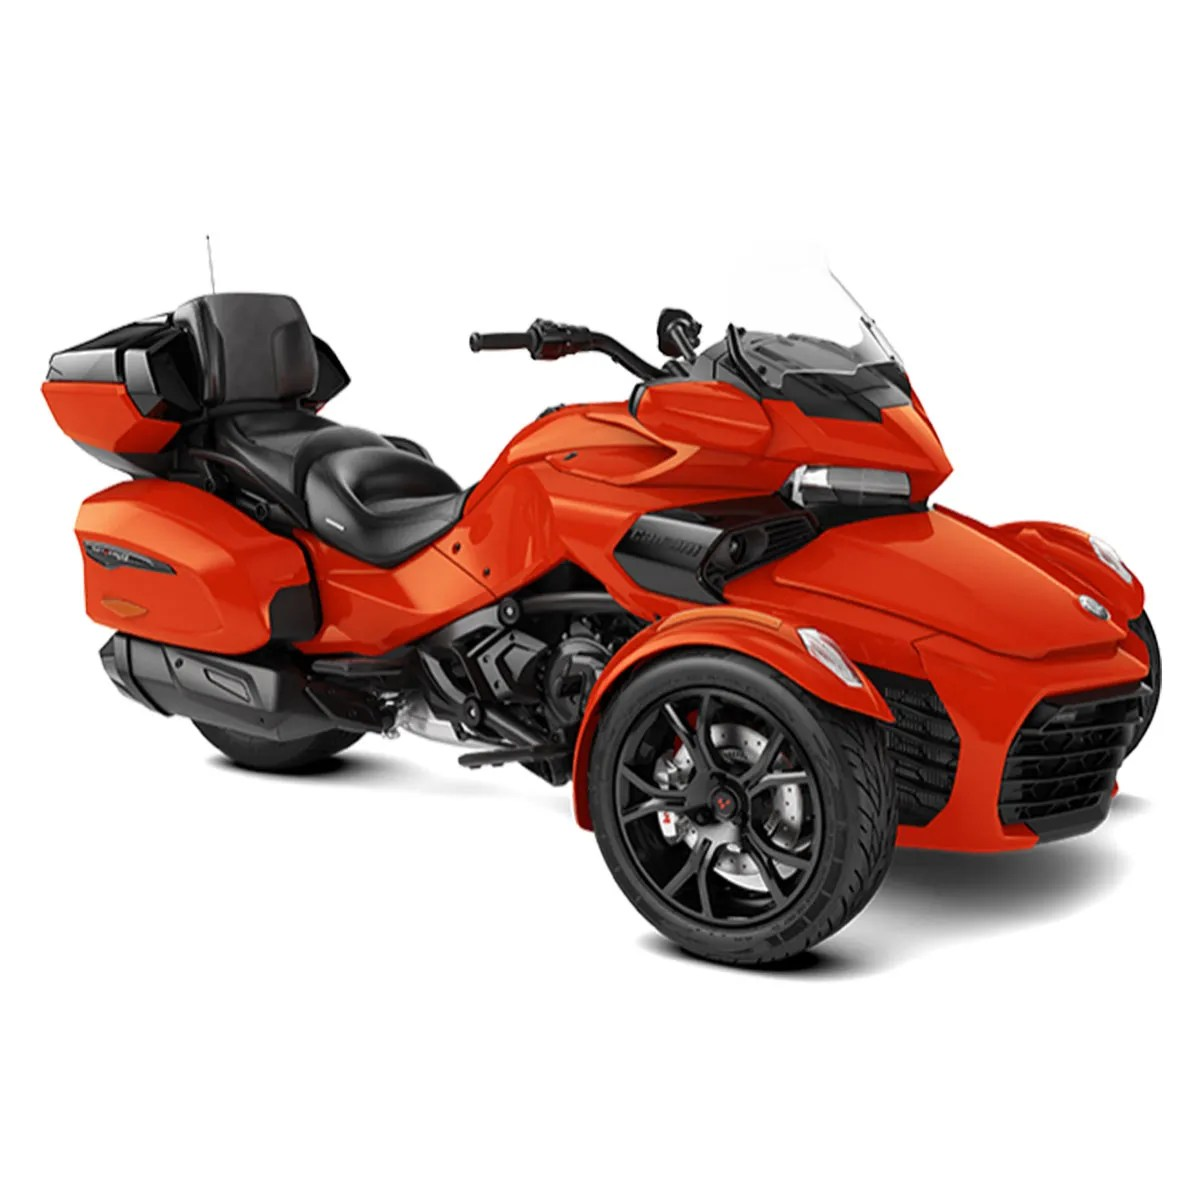 CAN-AM-SPYDER-LIMITED-MAGMA-ROUGE-METALLIQUE-EDITION-NOIR